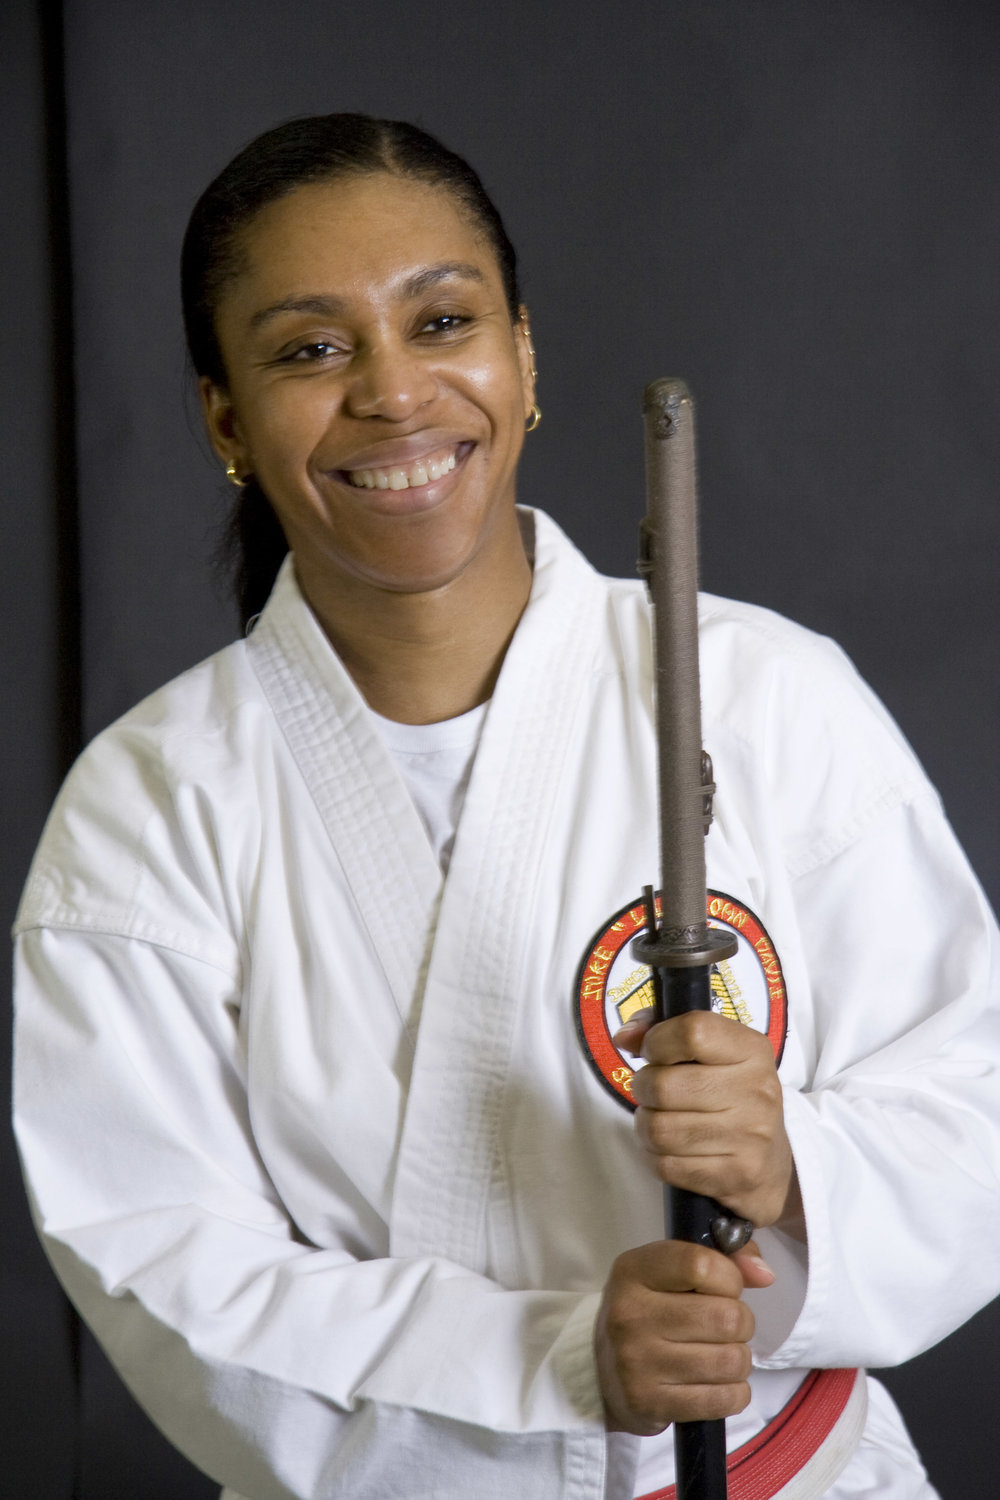 ChungSaNim Master Dominick Brioche - is a native of Haiti, and a three time Black Belt Hall of Fame inductee,. She holds a 6th degree Black Belt in Jujitsu, a 4th degree in HapKiDo, and a 4th degree in TaeKwonDo. Dominick is the first and only female Shihan in Kumite Ryu Jujitsu under Soke Lil John Davis. Certified as International Instructor in HapKiDo, Dominick has hosted seminars in New York City, Delaware, Washington DC, Haiti and the Dominican Republic. In her constant pursuit of excellence, ChungSaNim is furthering her formal education in Philosophy at the Doctorate level.